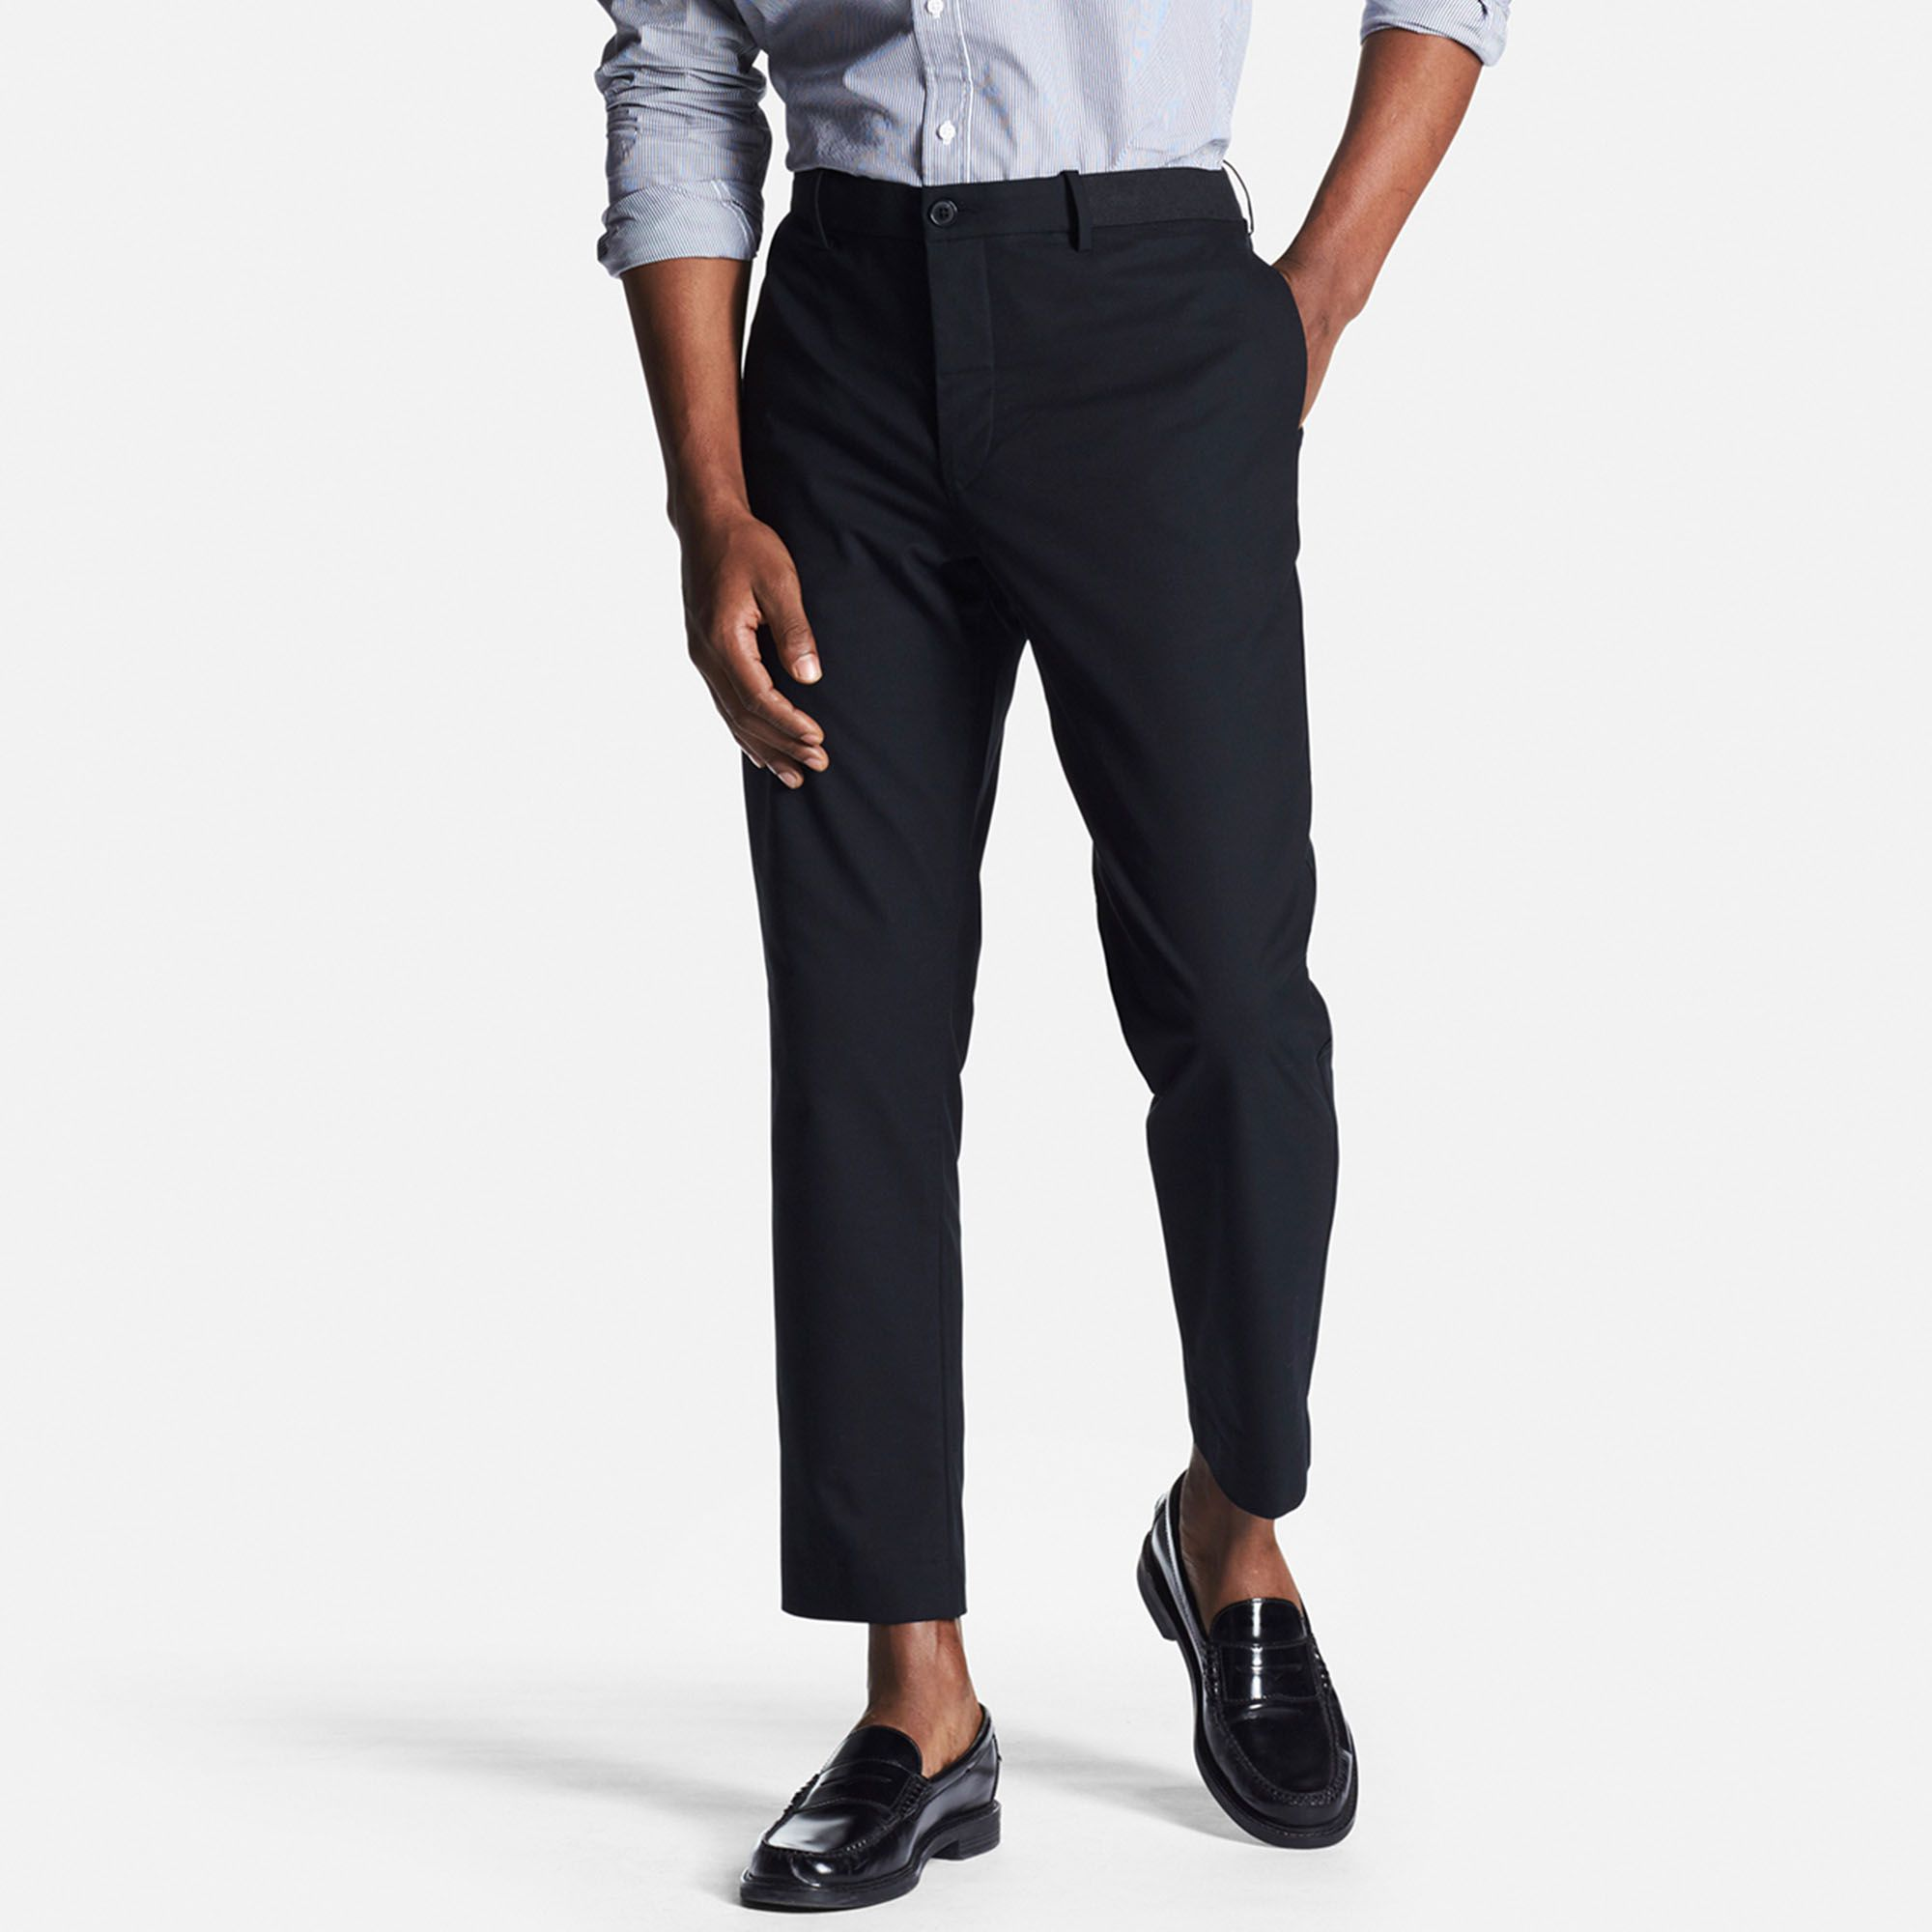 New Look Mens Relaxed Trousers